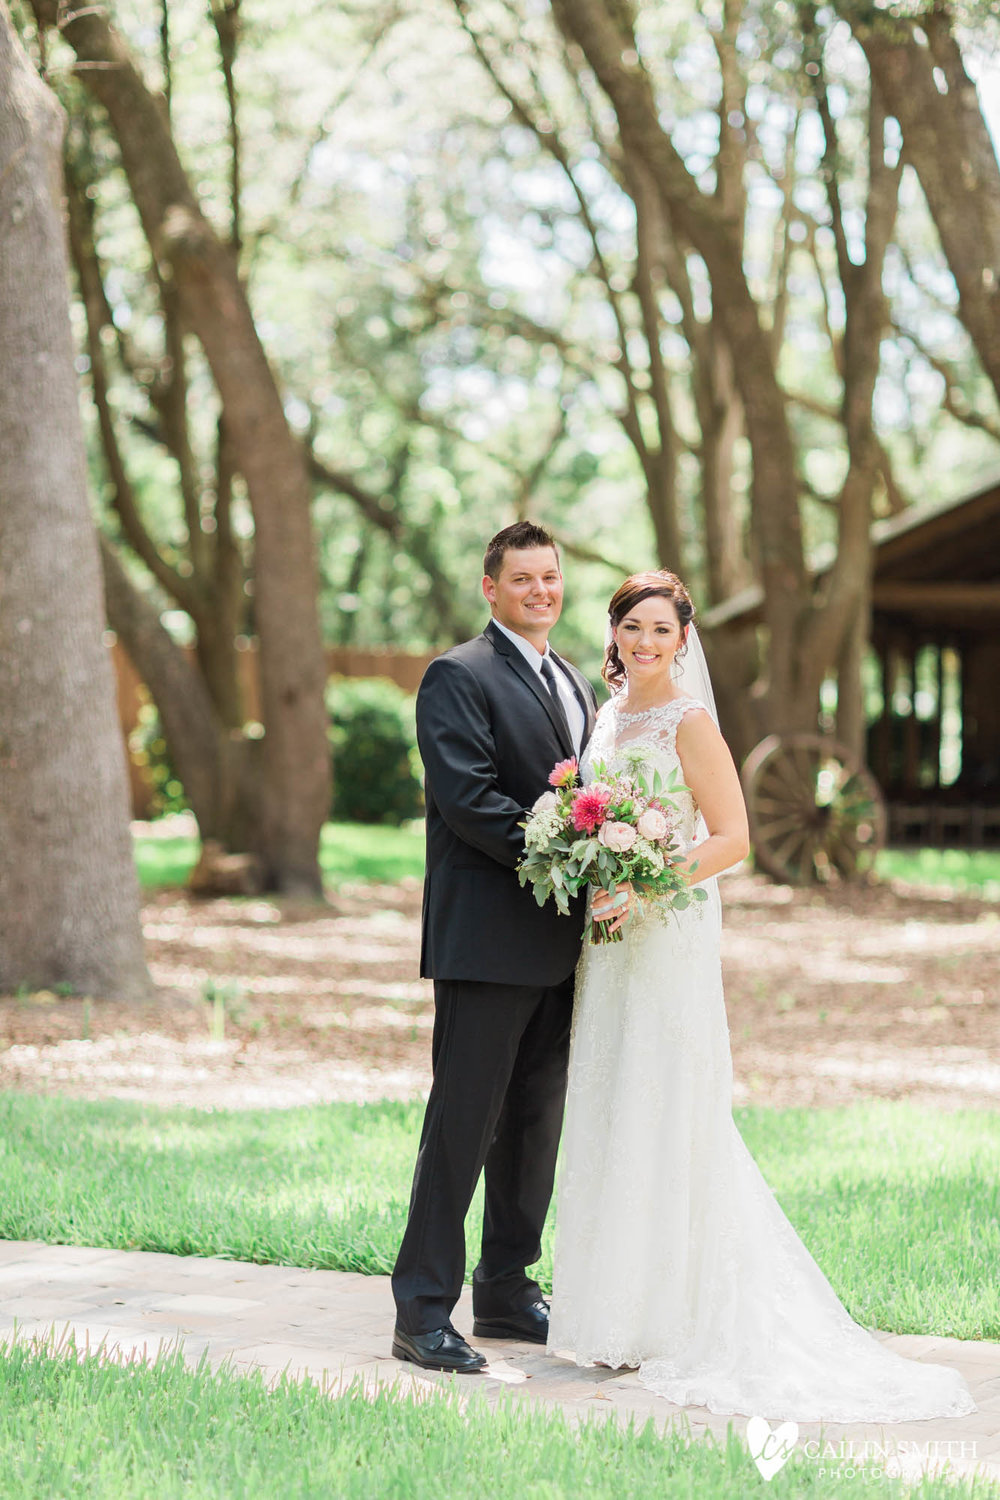 Bethany_Kyle_Bowing_Oaks_Plantation_Wedding_Photography_0036.jpg